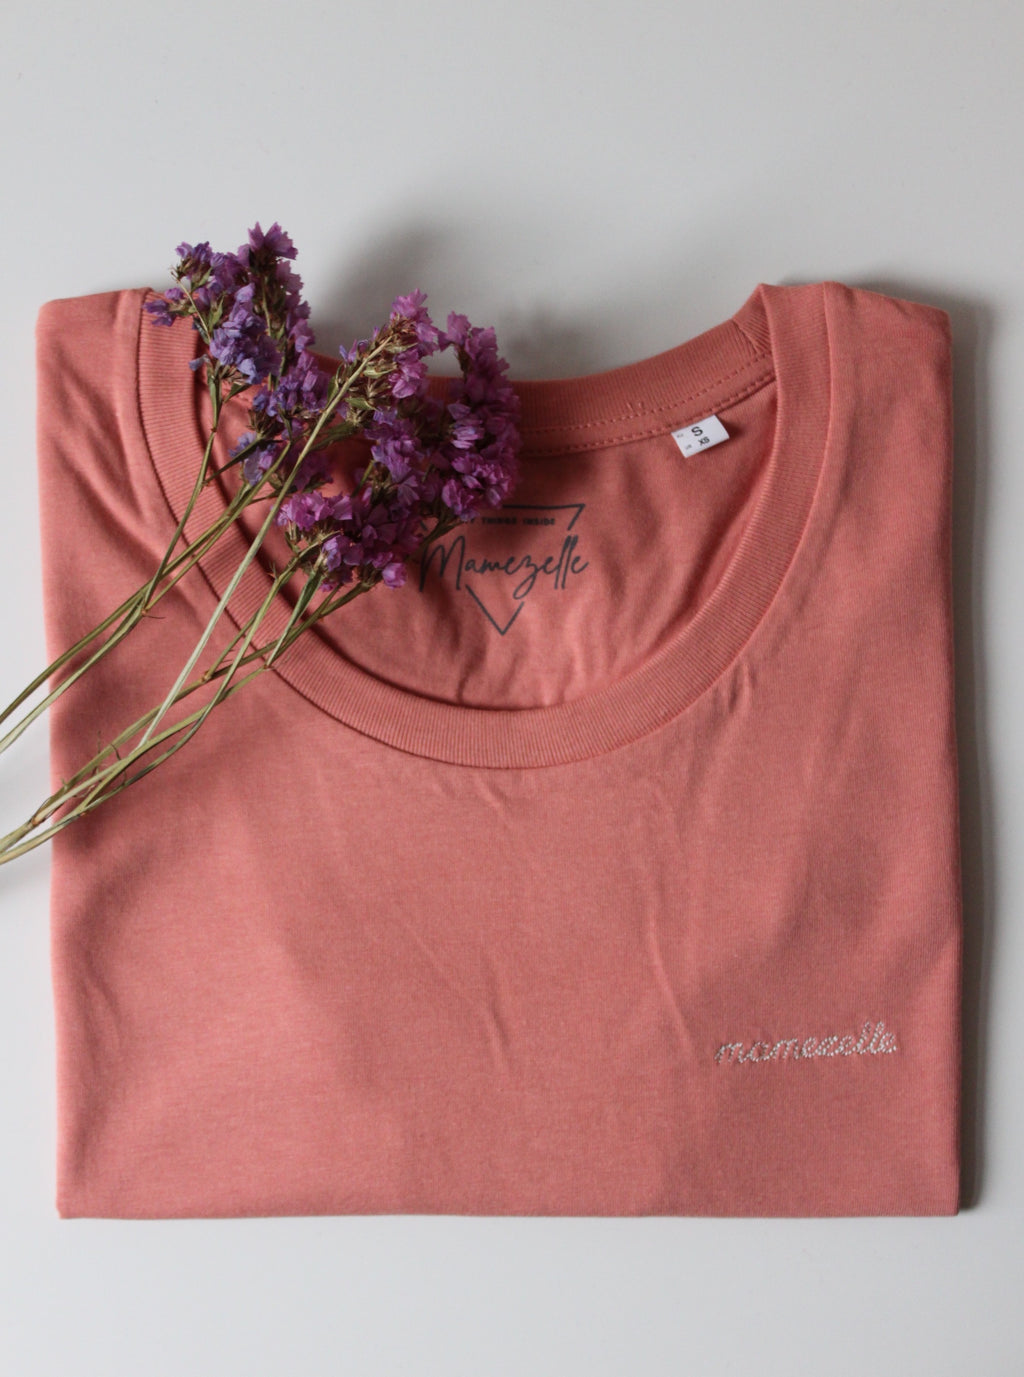 Mamezelle T-shirt Soft Peach